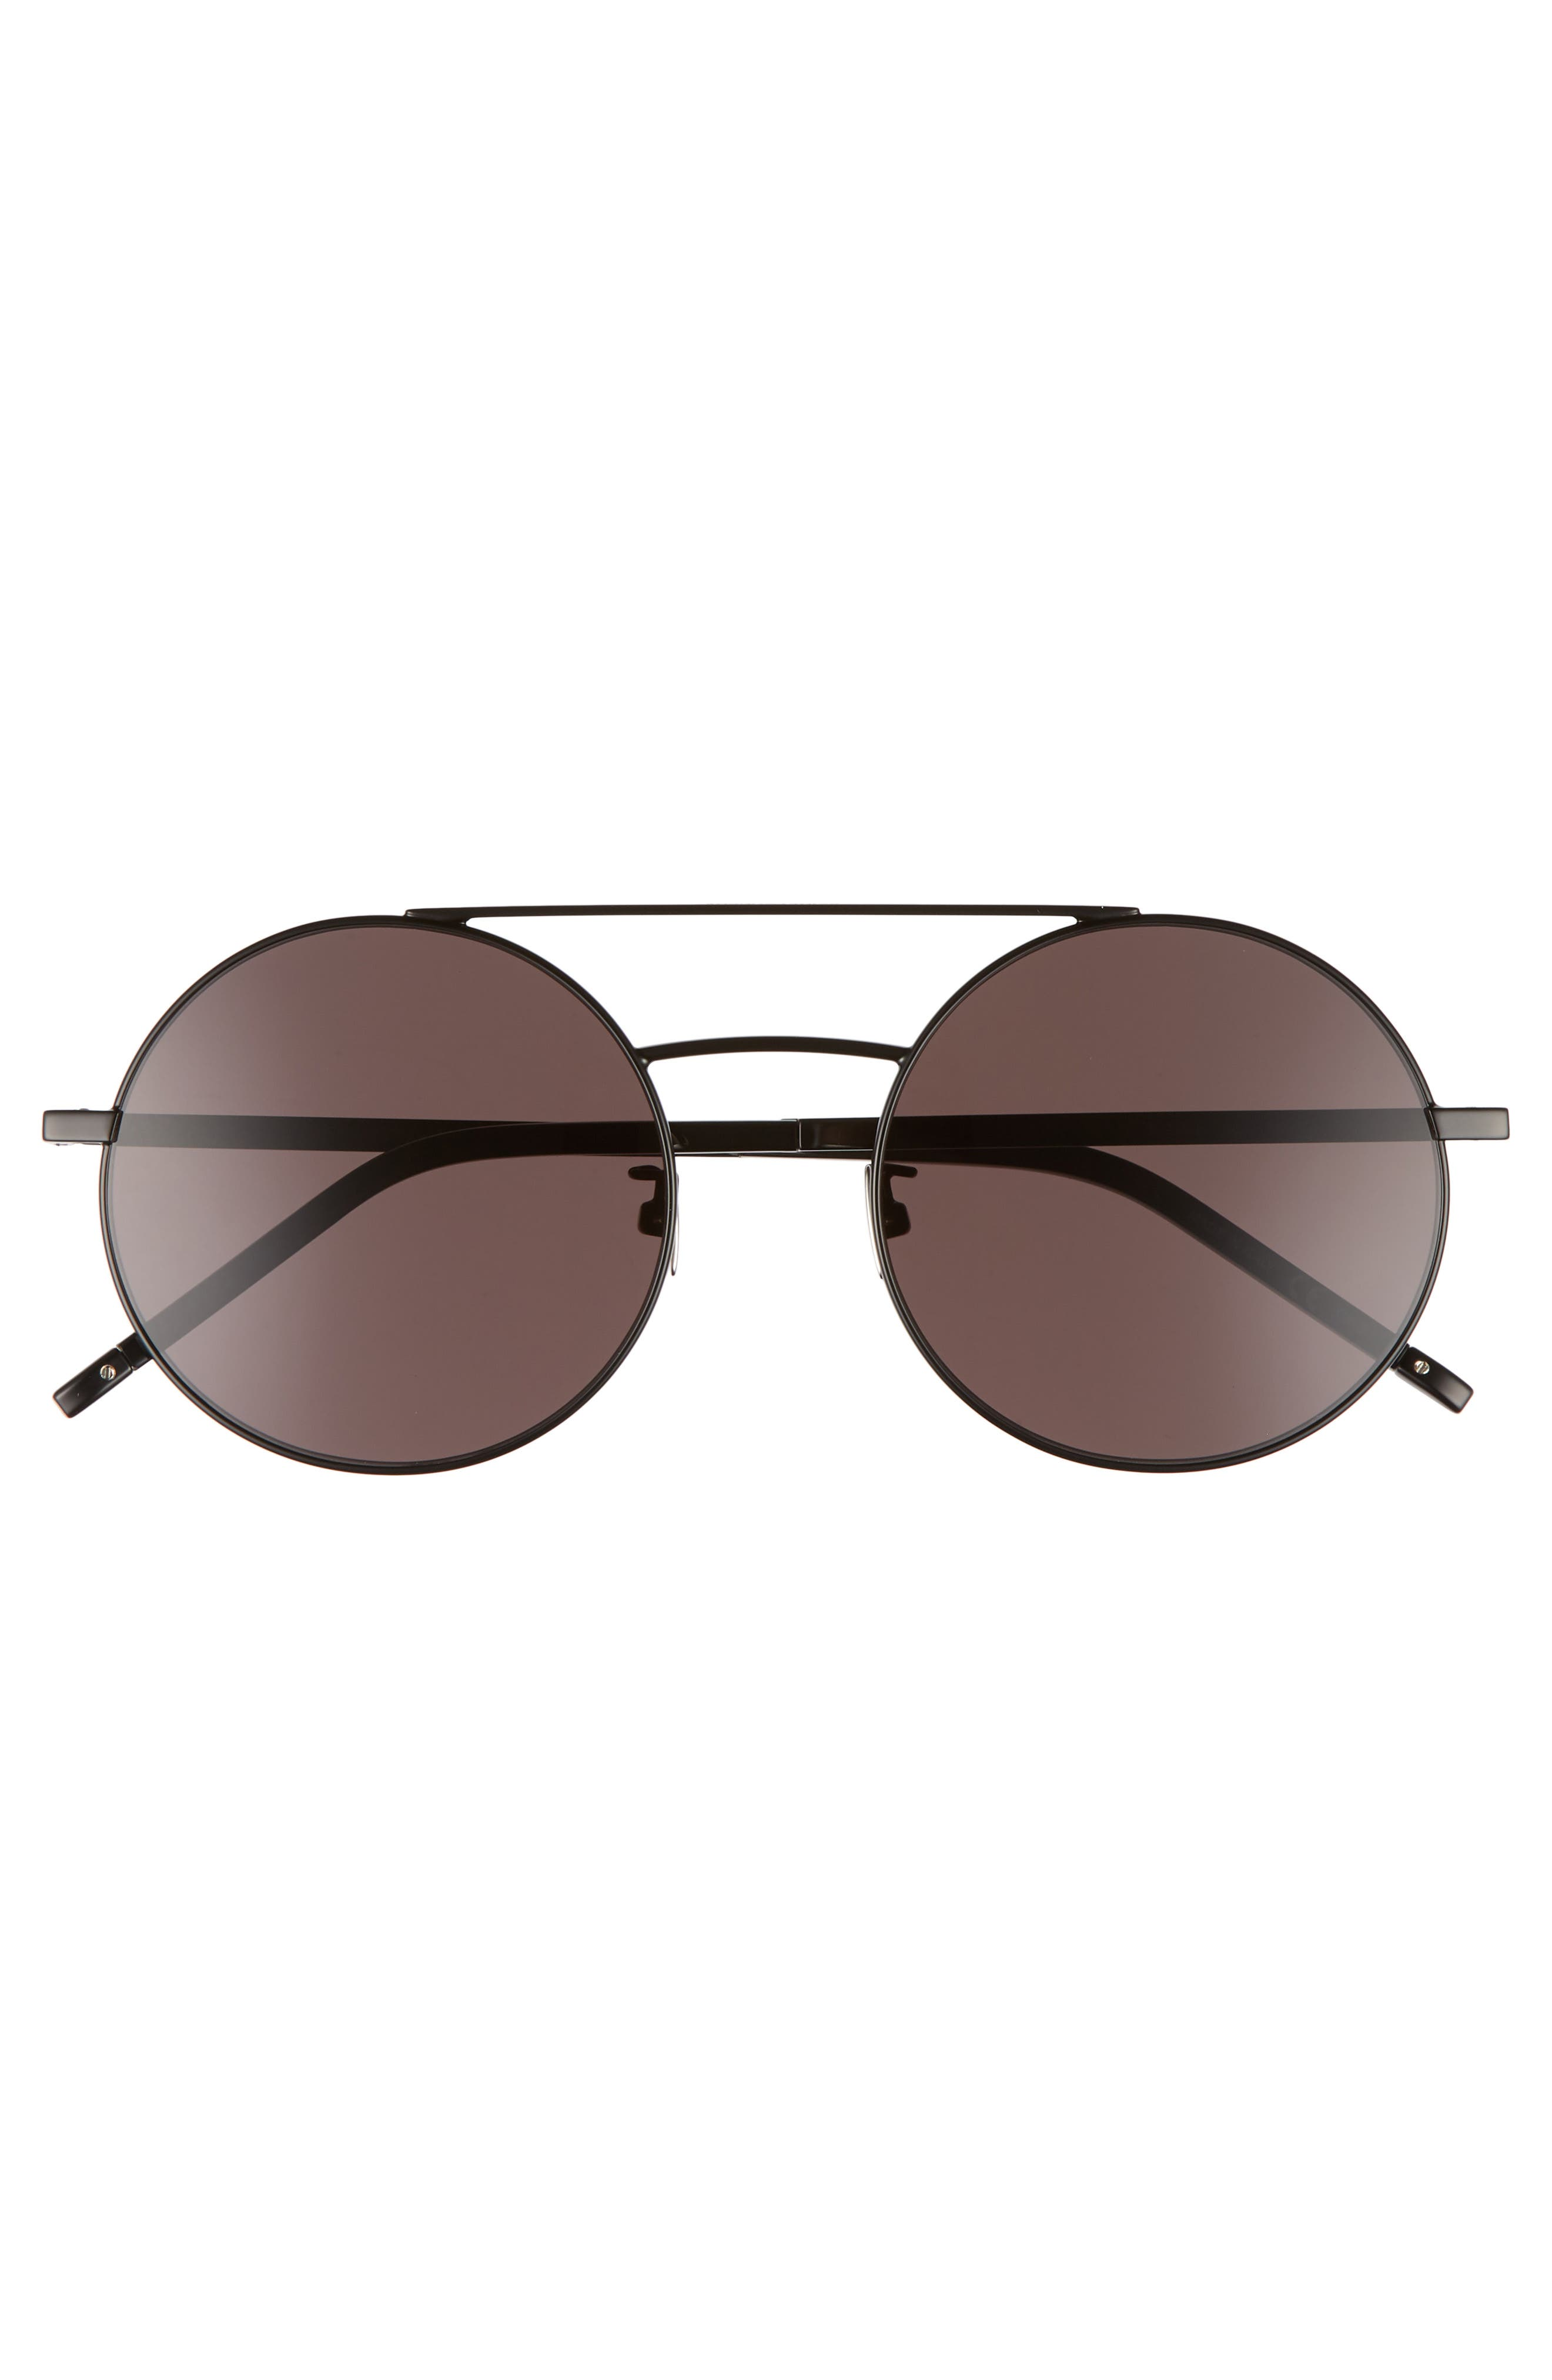 SL 210/F 56mm Round Aviator Sunglasses,                             Alternate thumbnail 2, color,                             Black